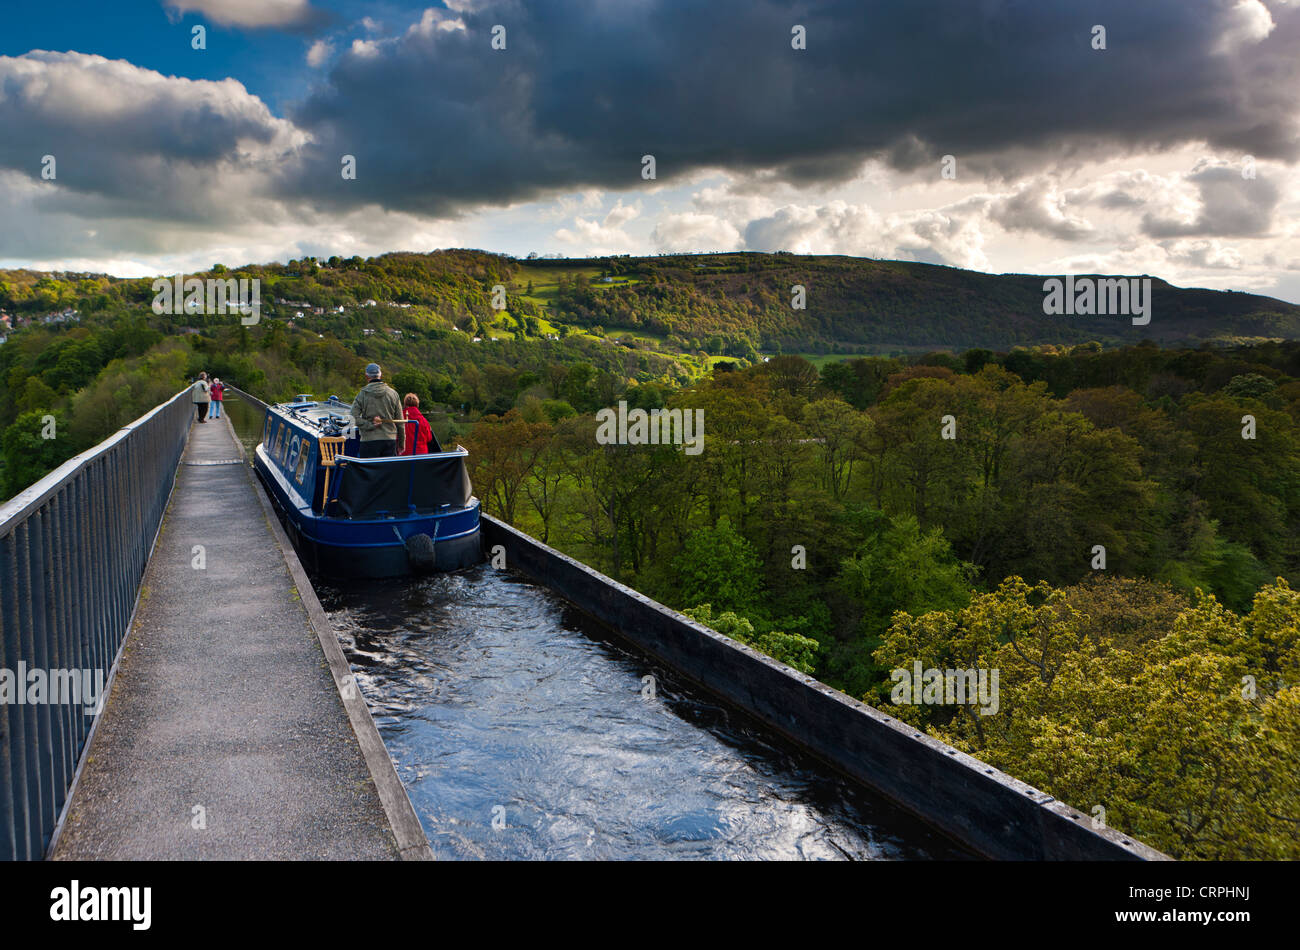 A barge travelling along the Pontcysyllte Aqueduct, a navigable aqueduct that carries the Llangollen Canal over Stock Photo